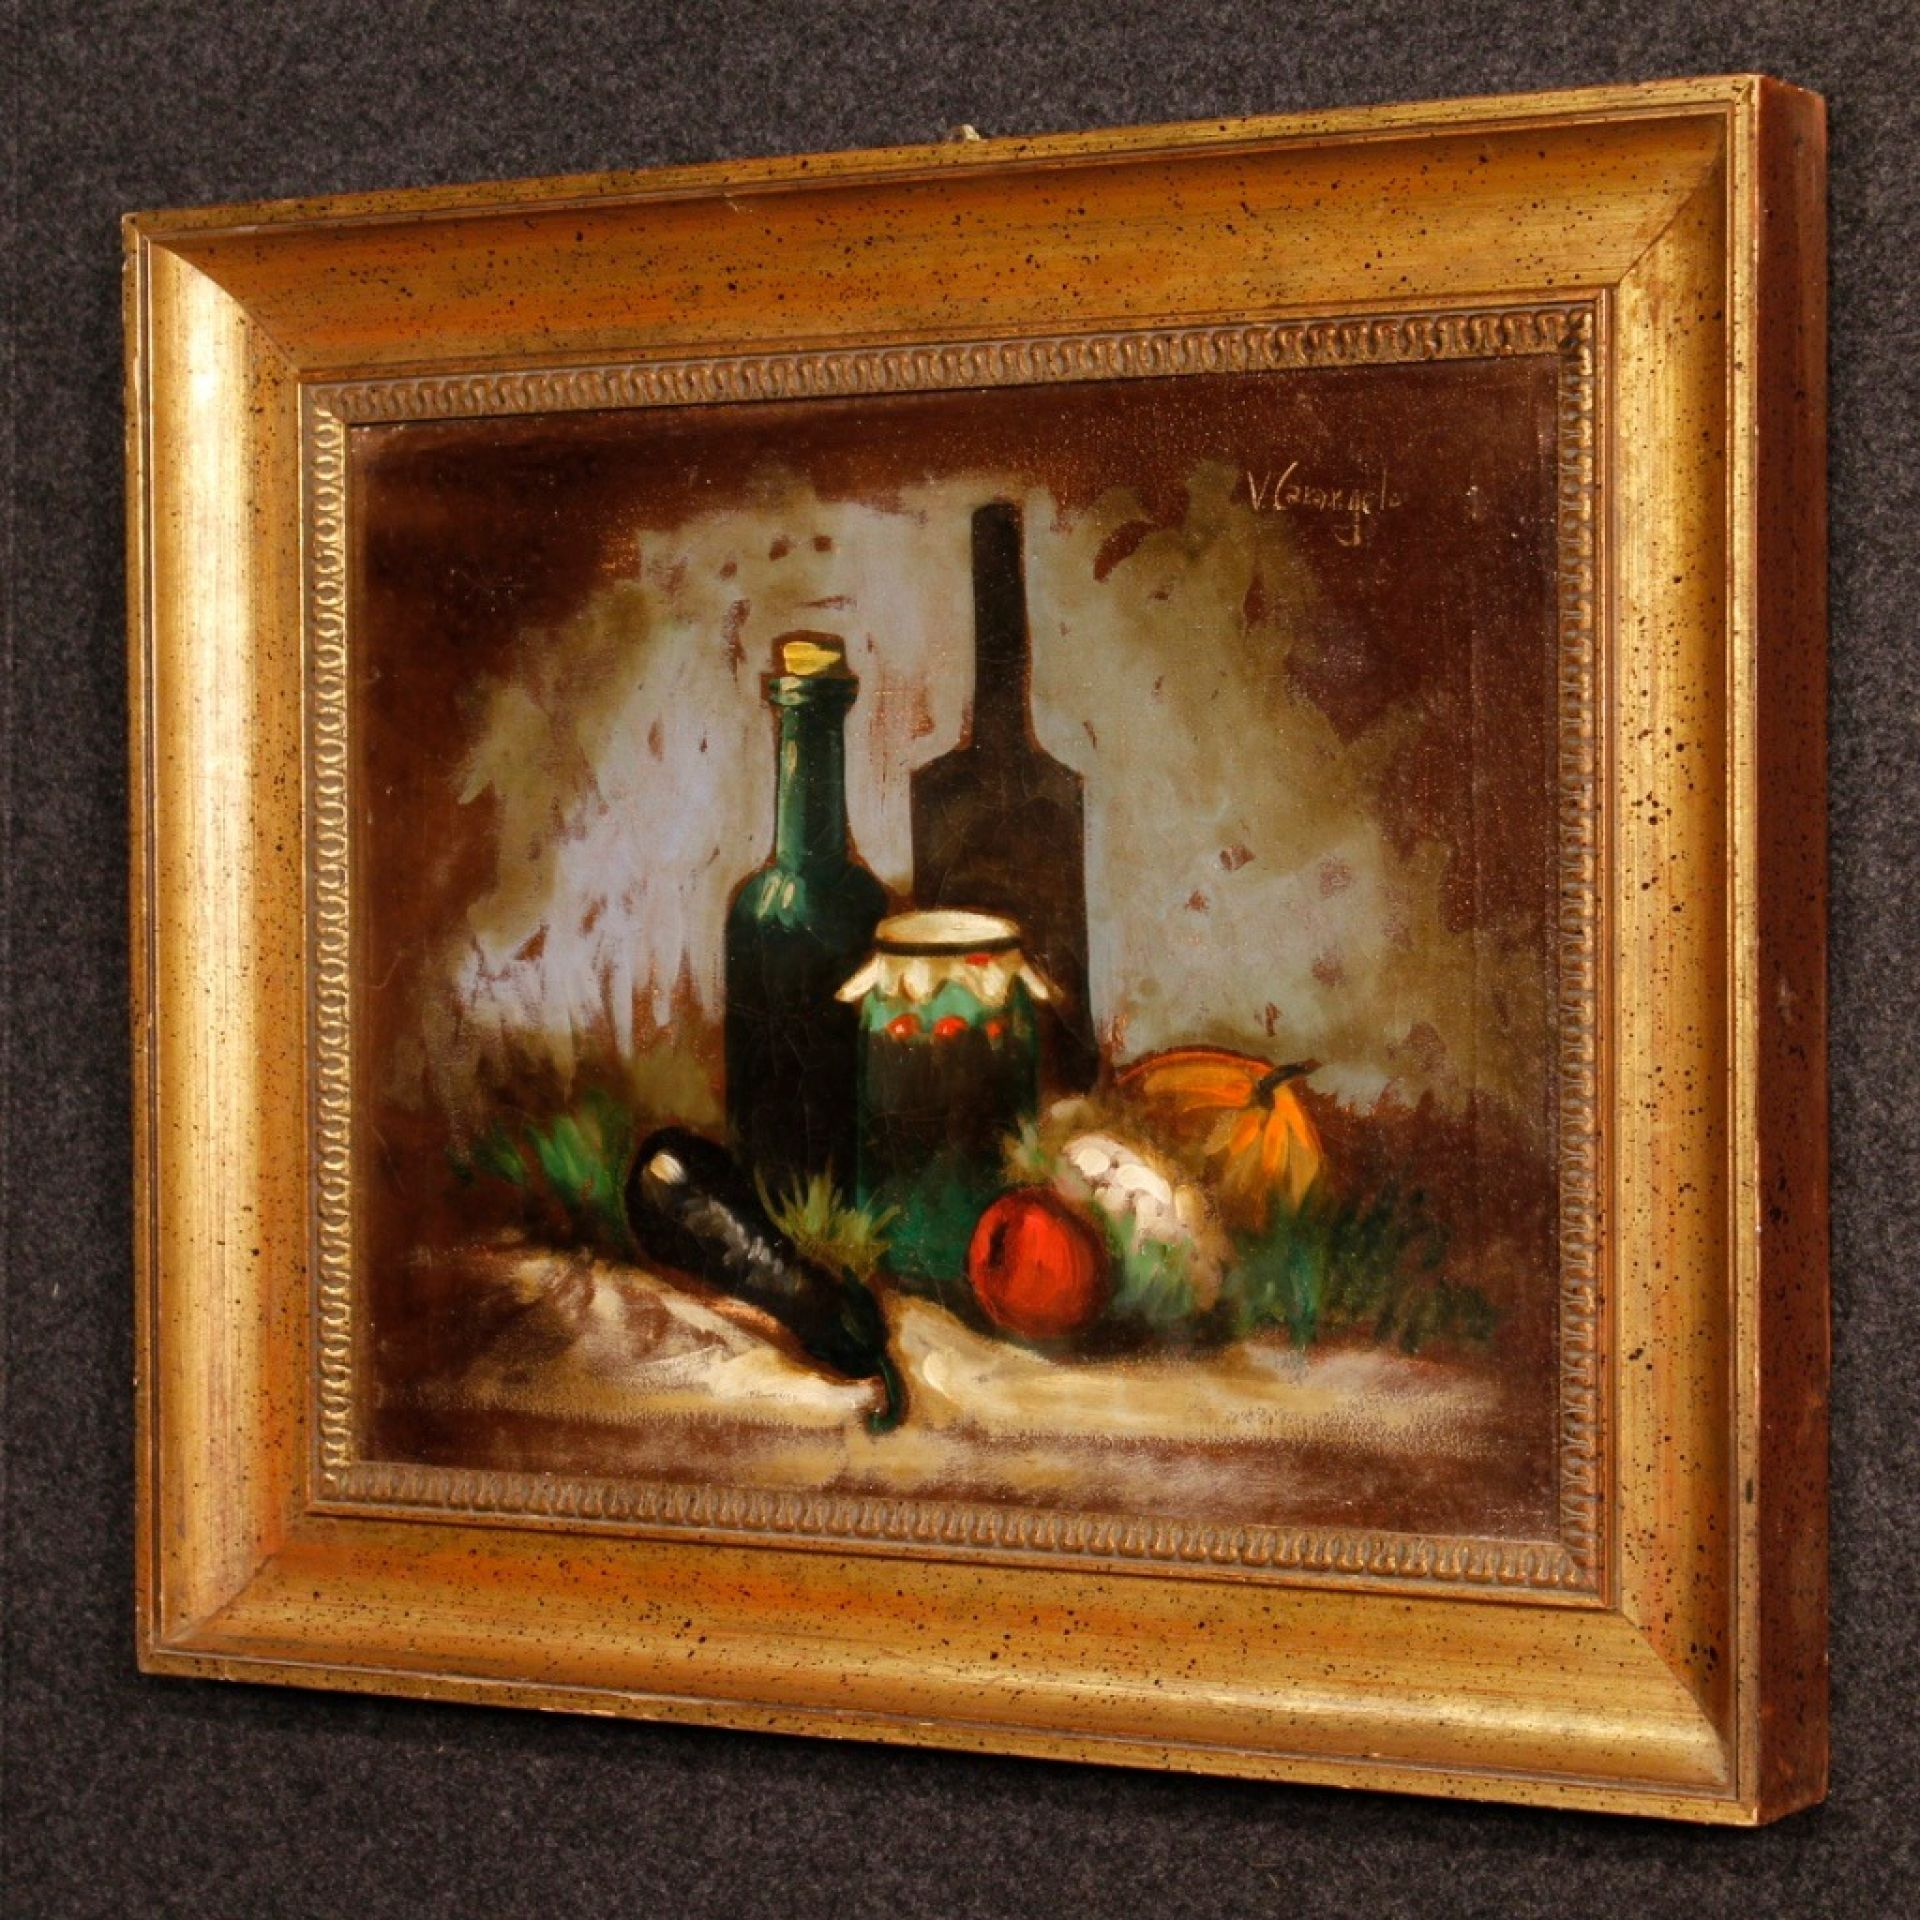 Italian Signed Still Life Oil On Canvas Painting From 20th Century